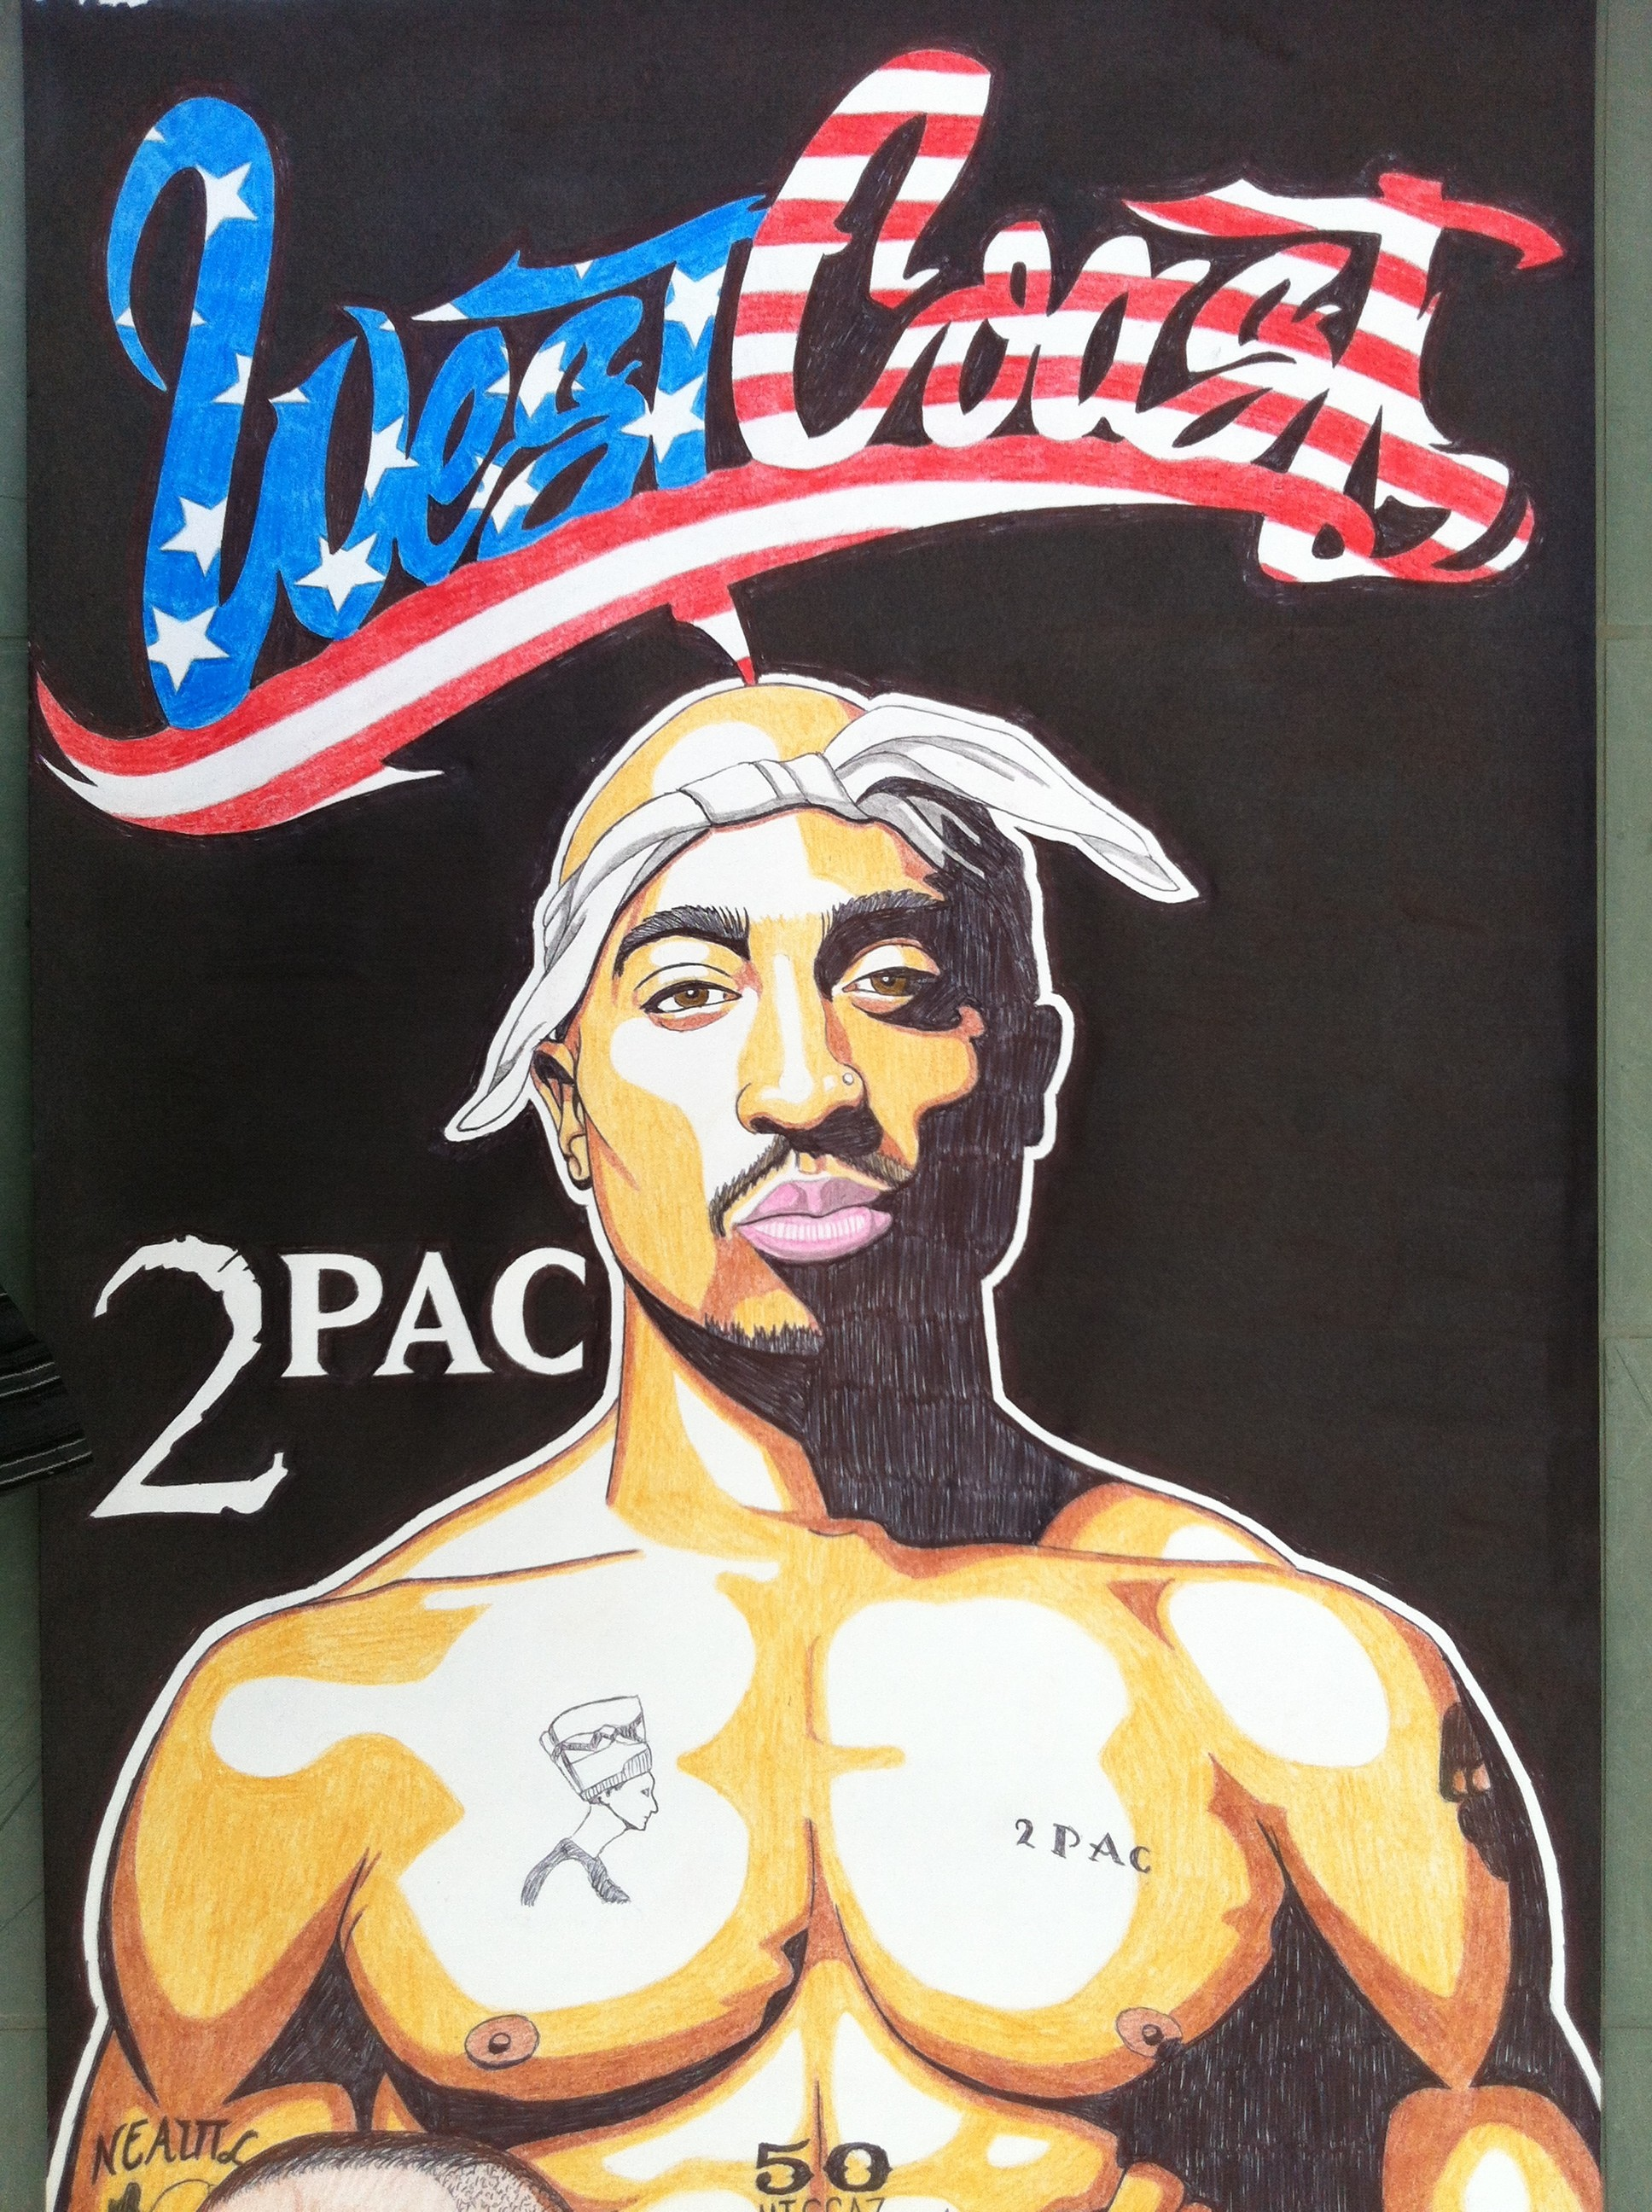 … West Coast 0 2pac dr dre snoop dogg by golhom